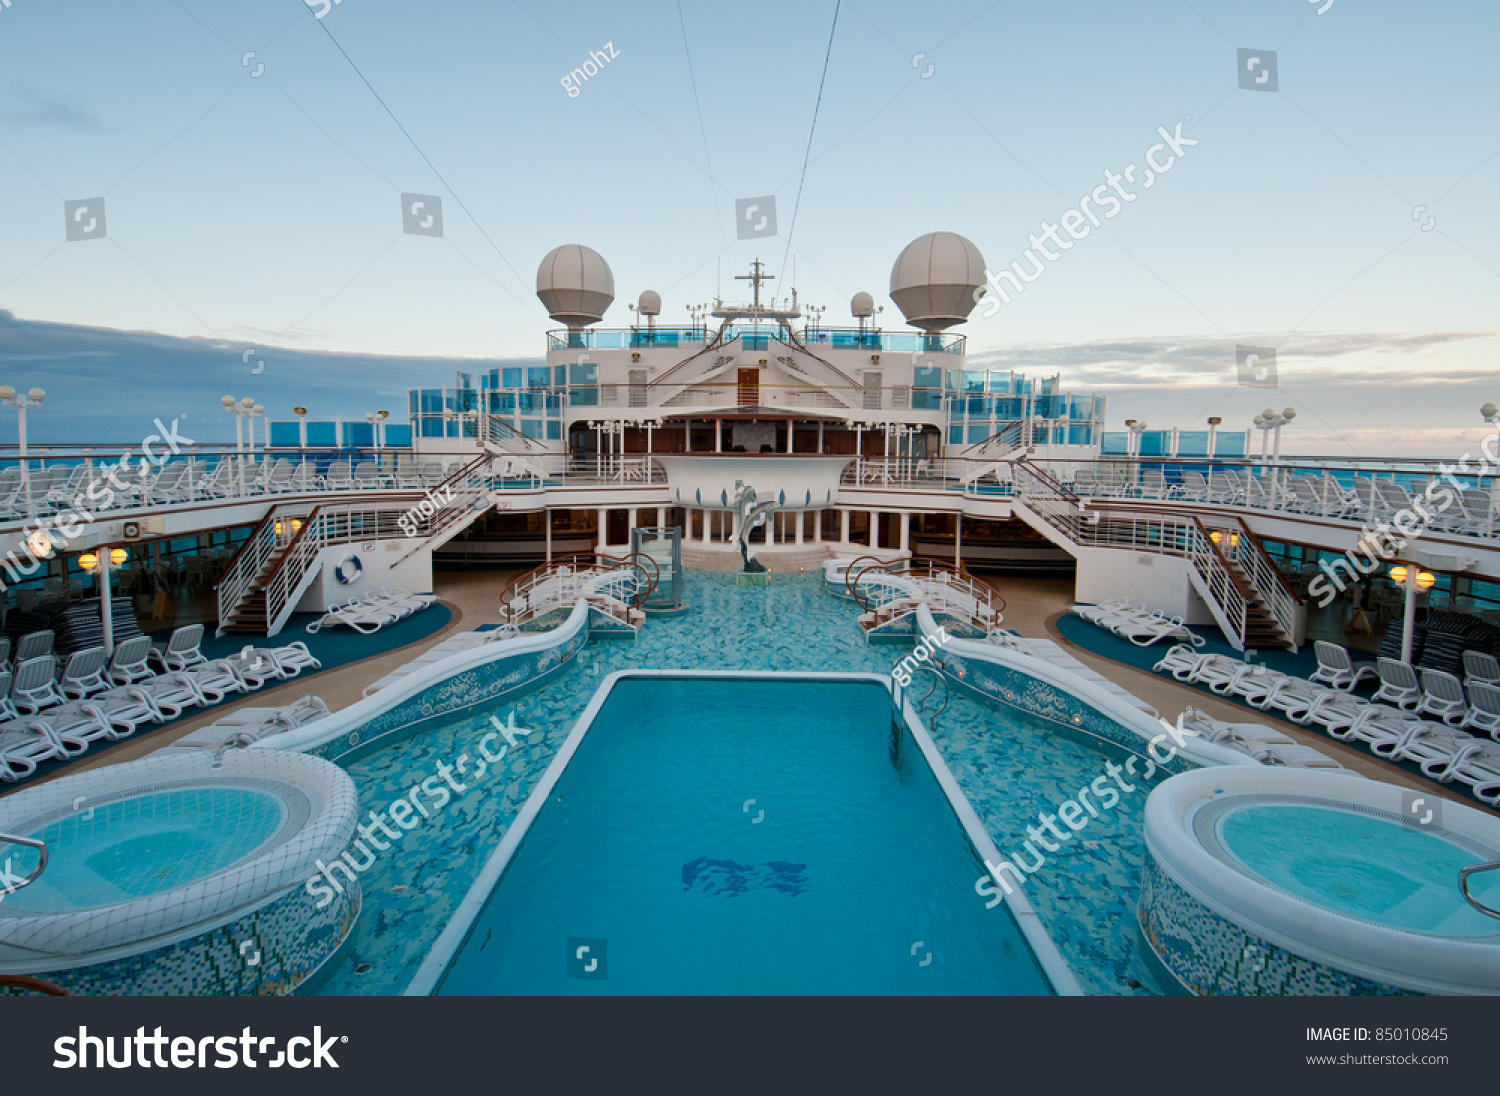 View Of Top Deck Of Cruise Ship With Luxurious Pools And ...